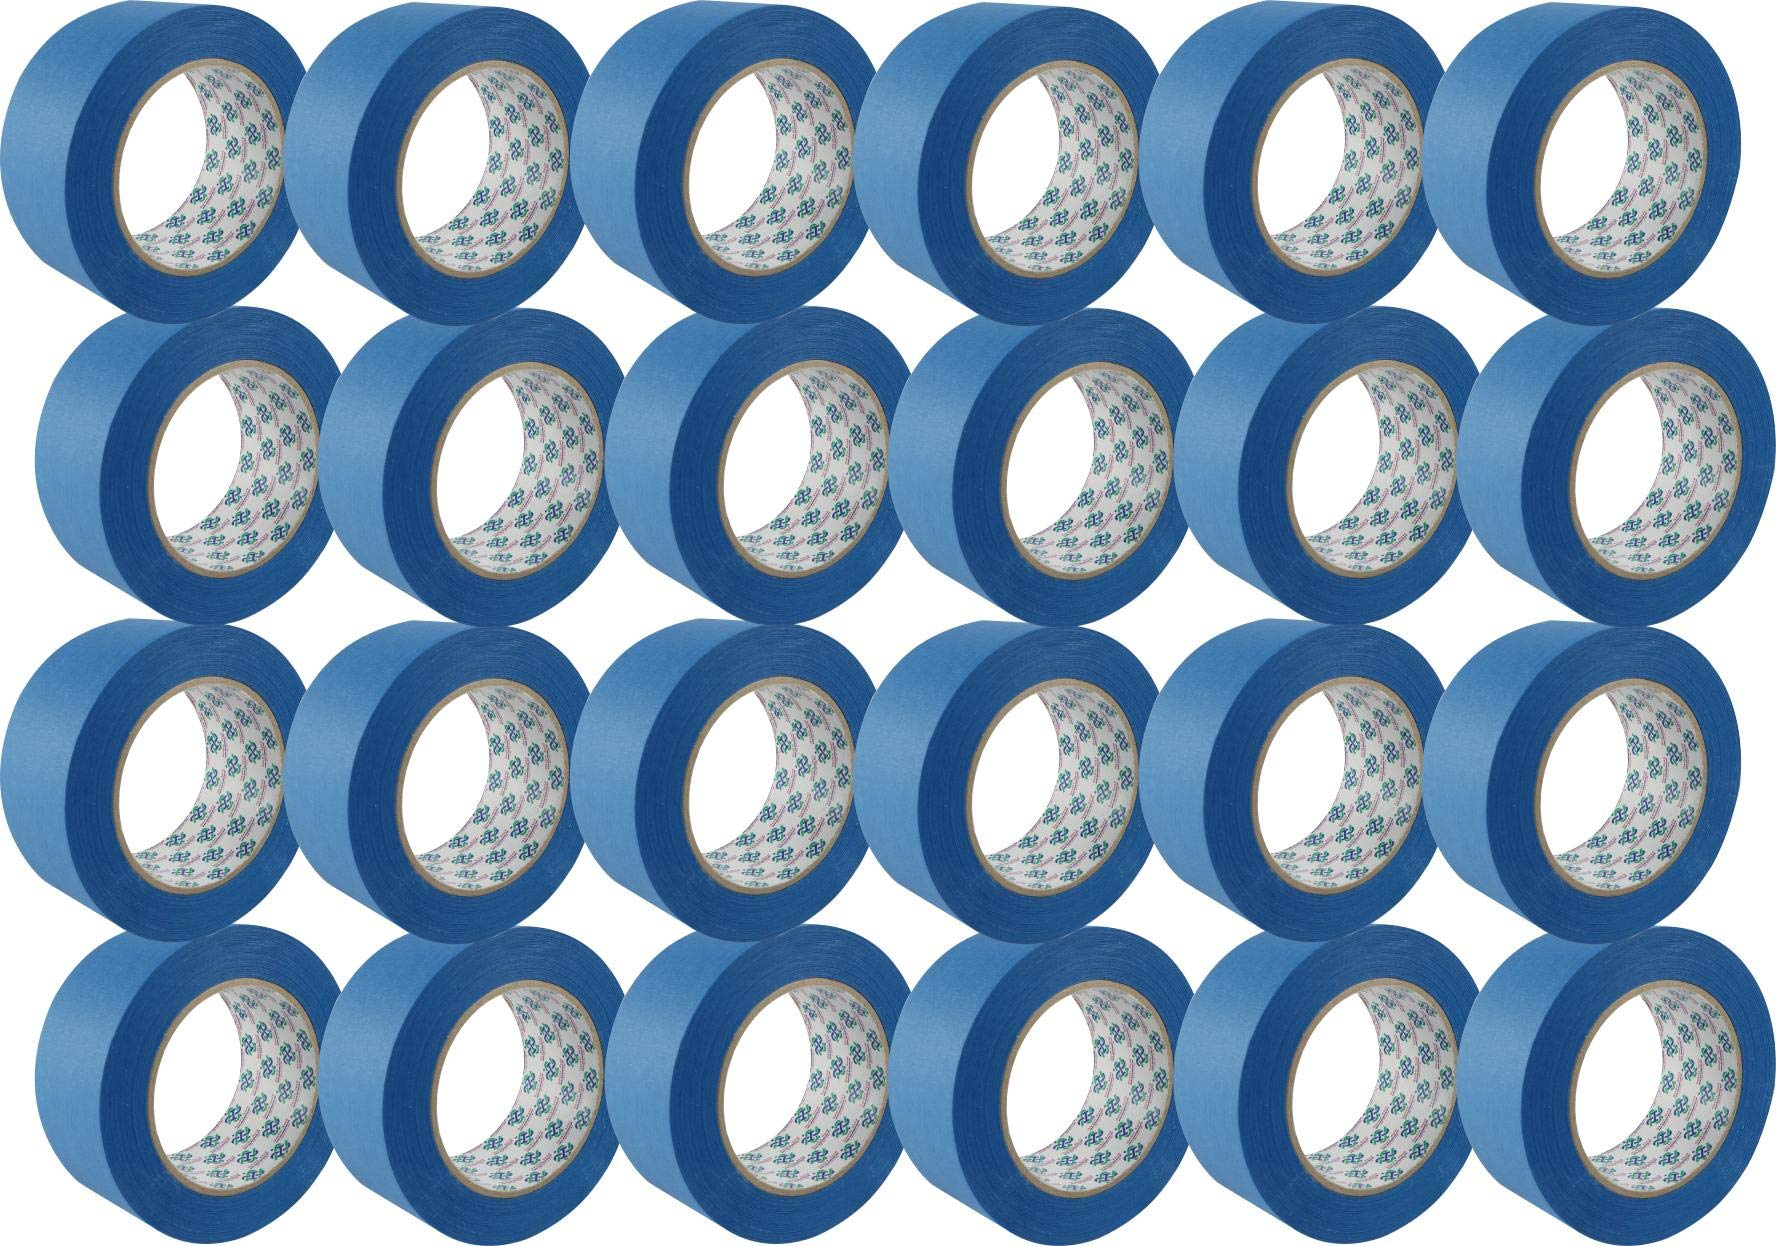 24 Roll 1.88''x 60yd 14 Day Clean Release Painters Tape Bulk, 2 inch Blue Painters Tape Case, Blue Tape 2 inch, Painter's Tape 2 inch, Blue Painters Tape 1.88 inch, Blue Masking Tape 2 inch